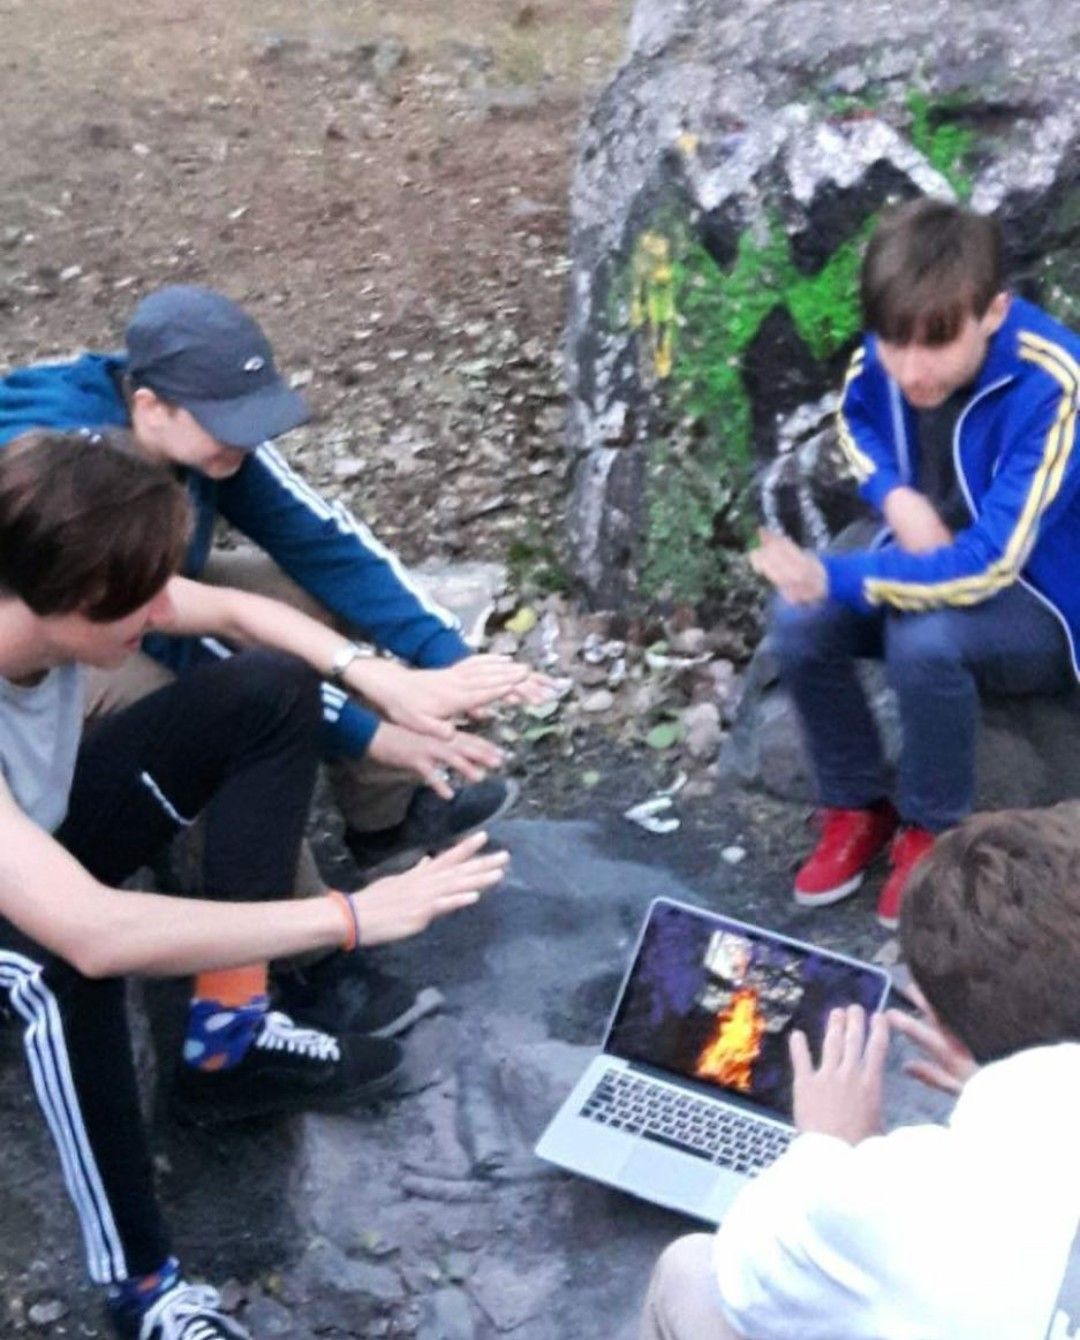 Me and my friends at a campfire - meme